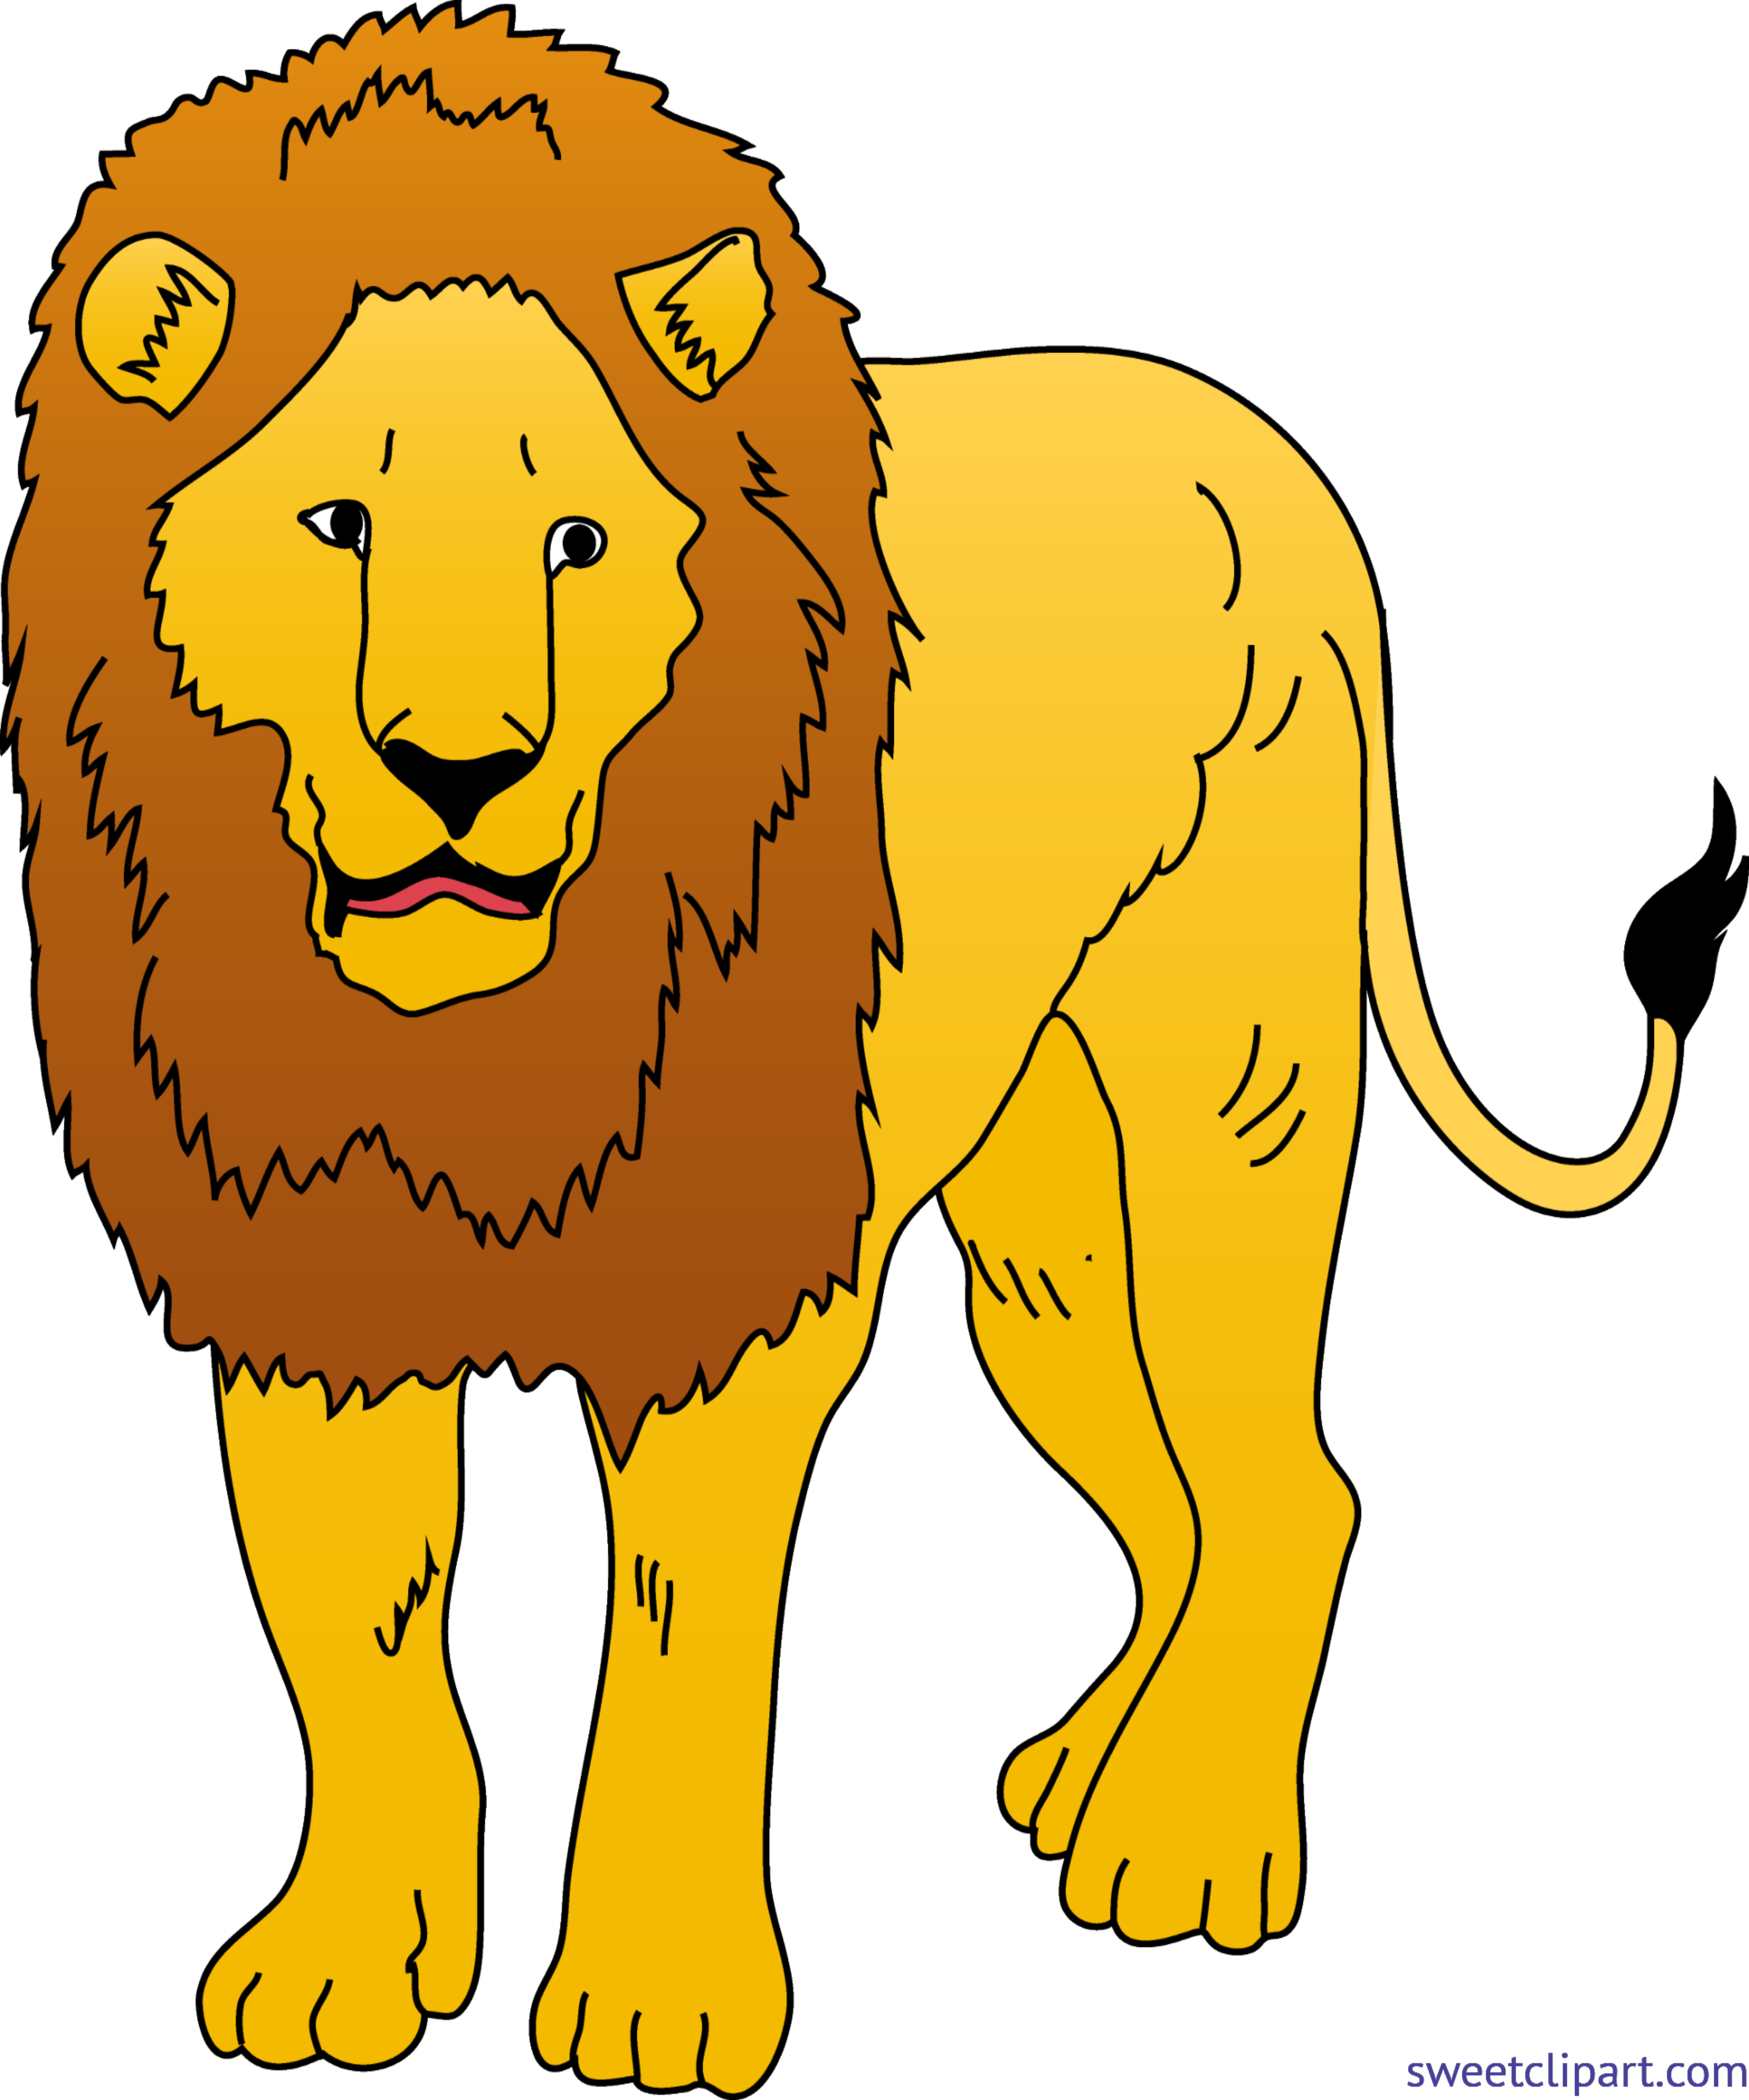 Lioness at getdrawings com. Tired clipart tiger